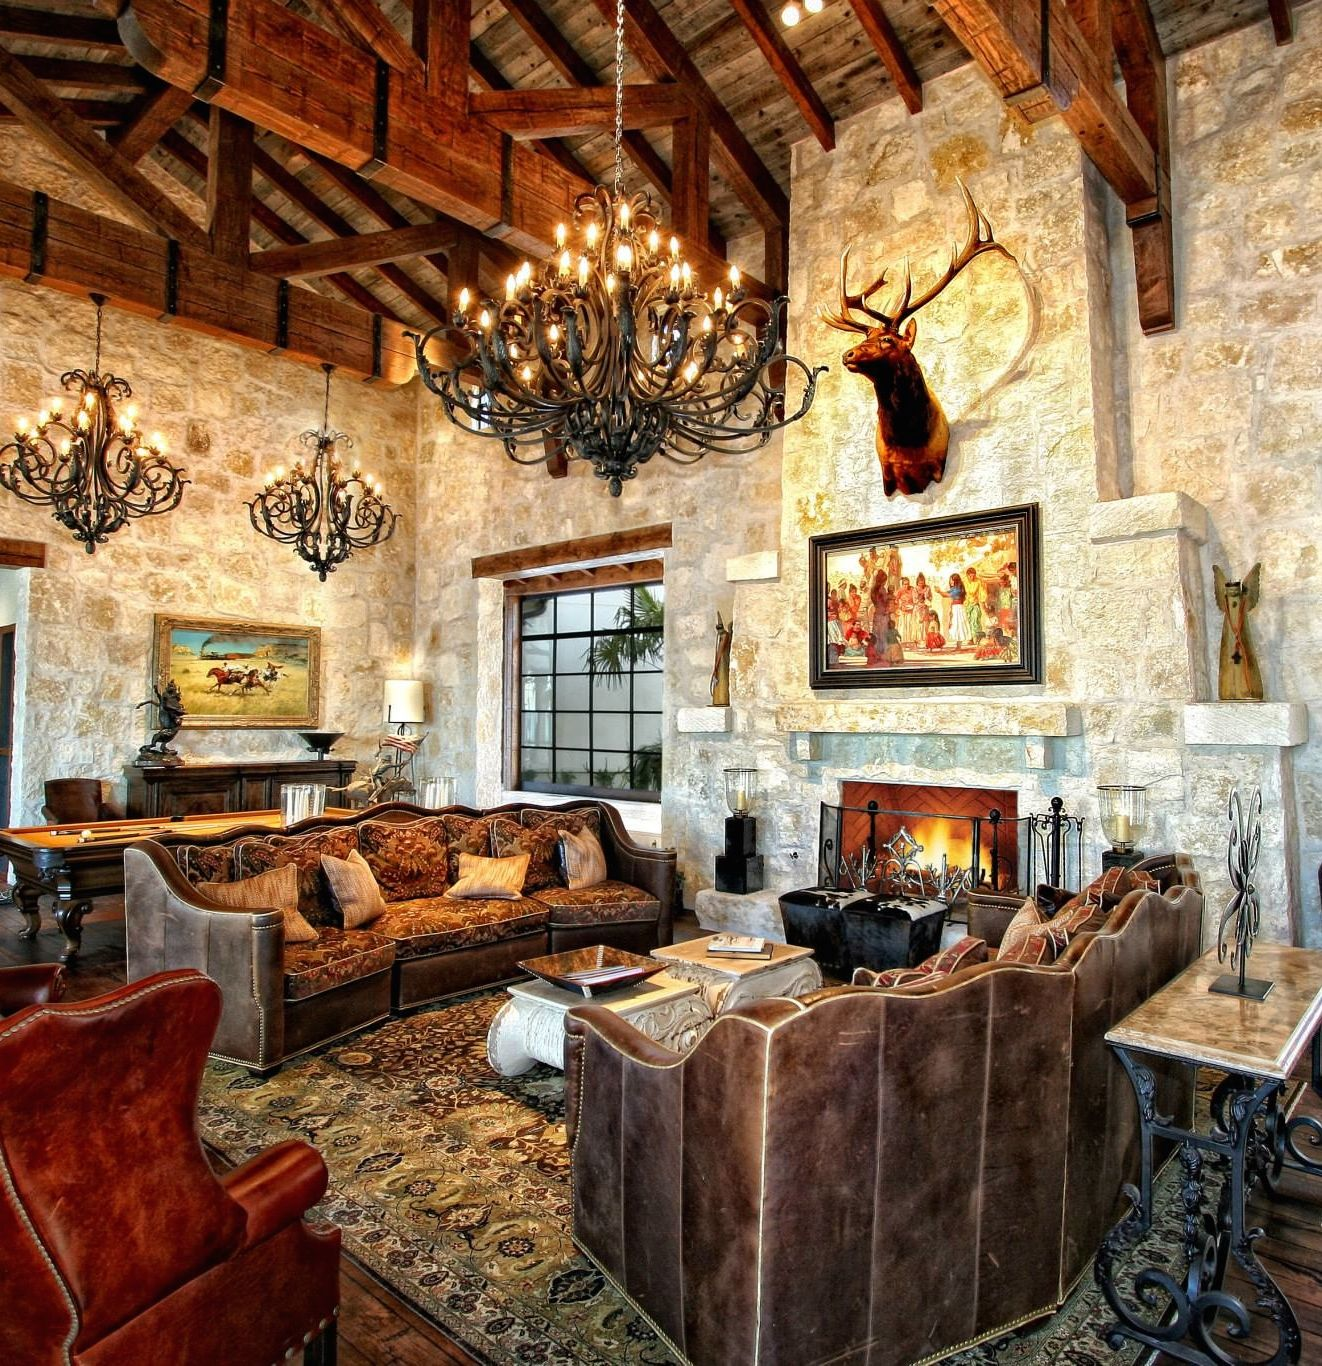 Old World Living Room Design Rustic Old World Design With Truss Ceiling And Stone Walls